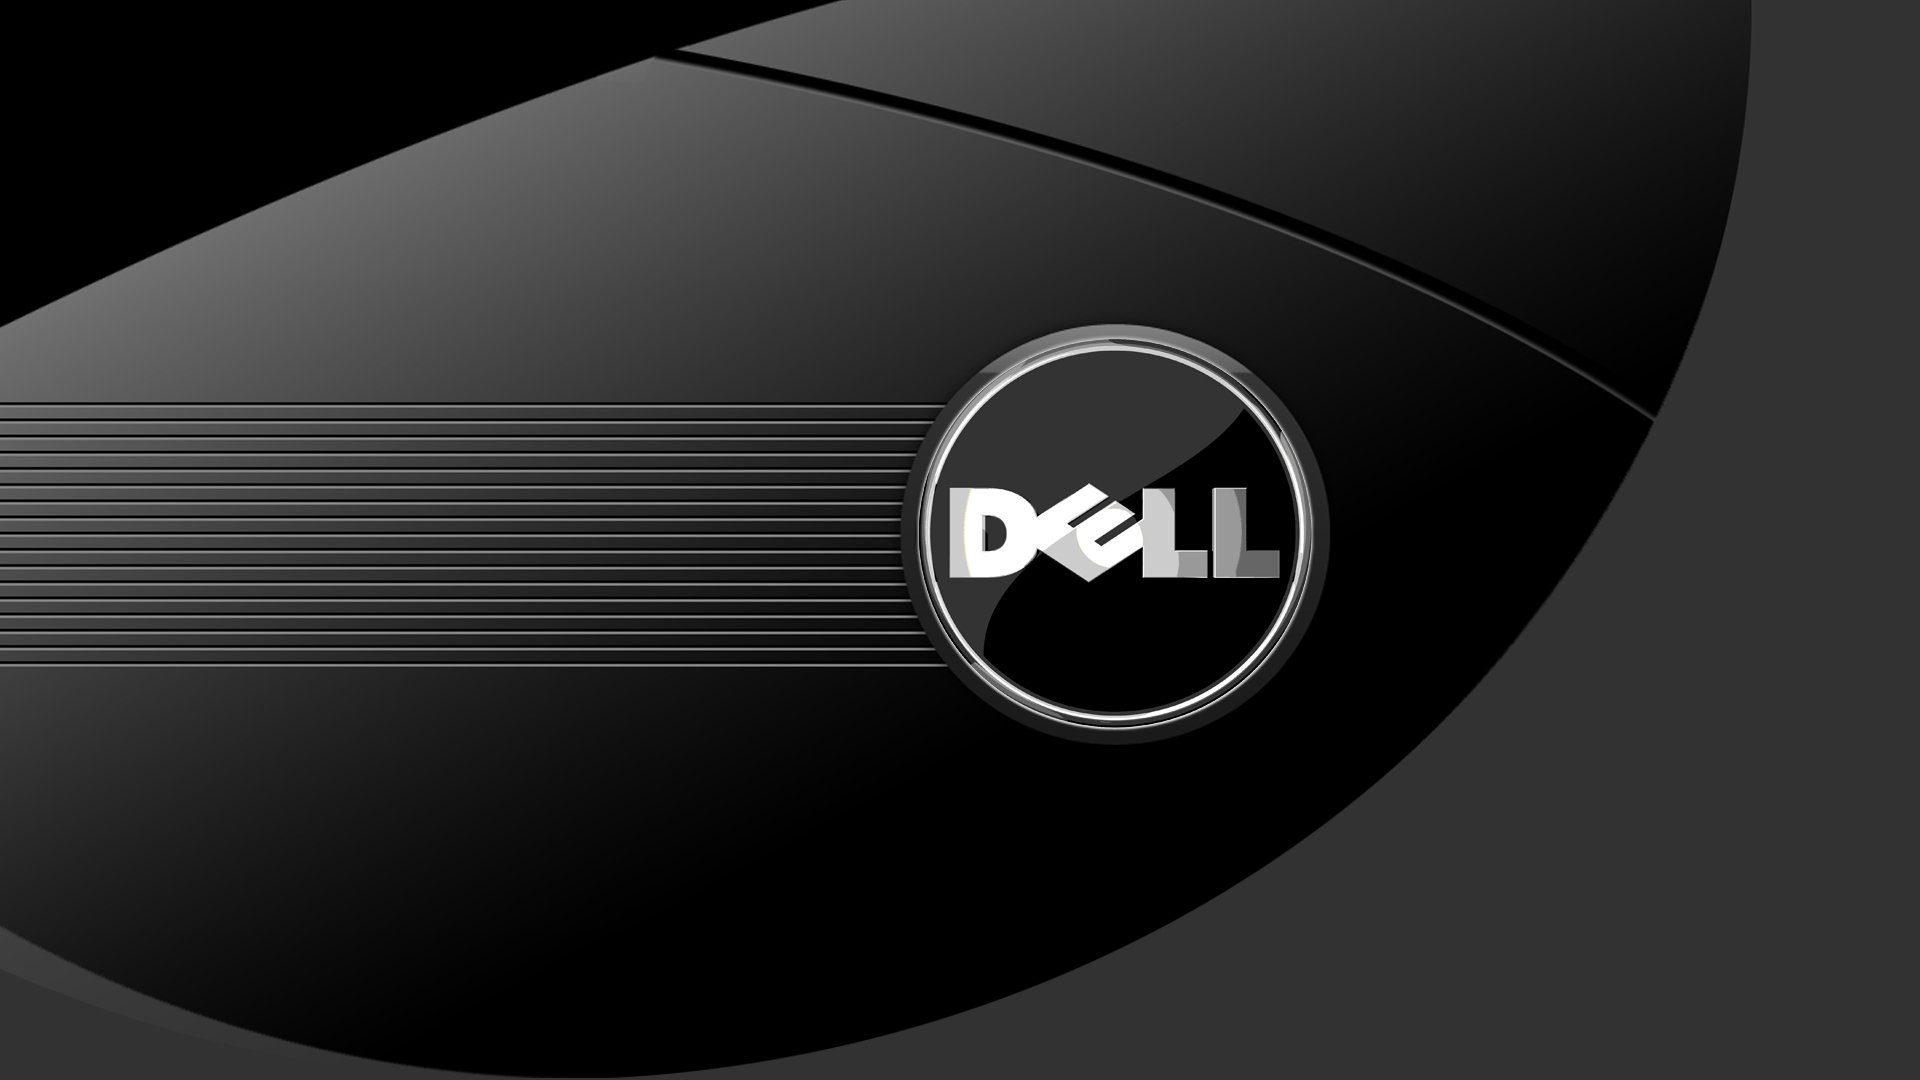 48+ Dell HD Wallpaper 1920x1080 on WallpaperSafari